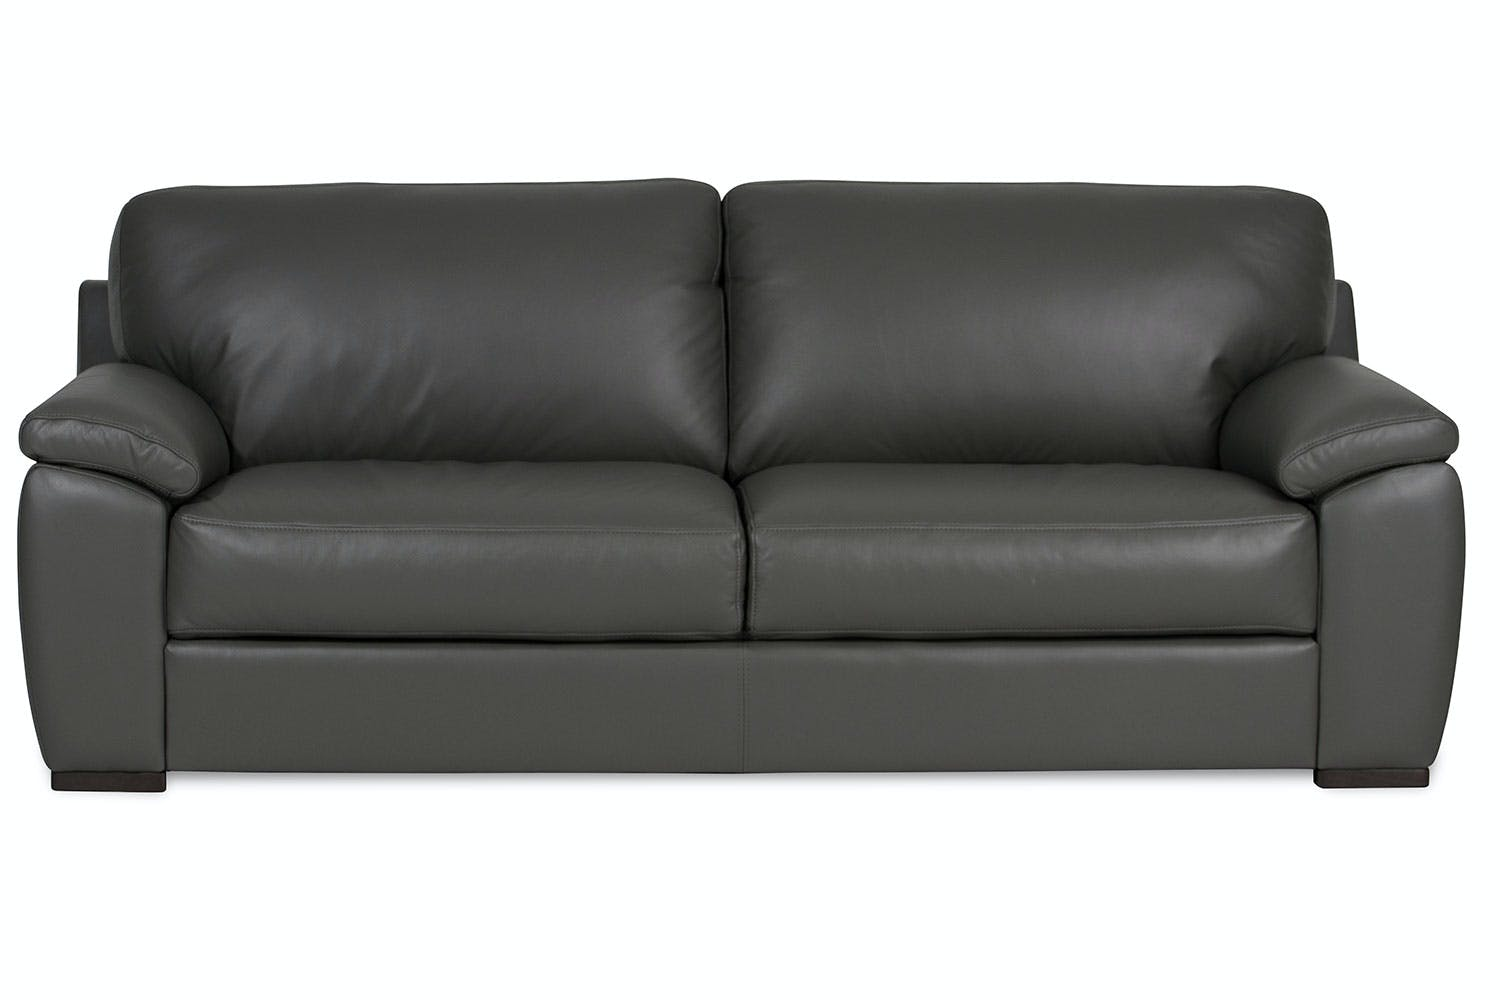 Amalfi 3 piece leather sofa set hereo sofa for Amalfi sofa chaise